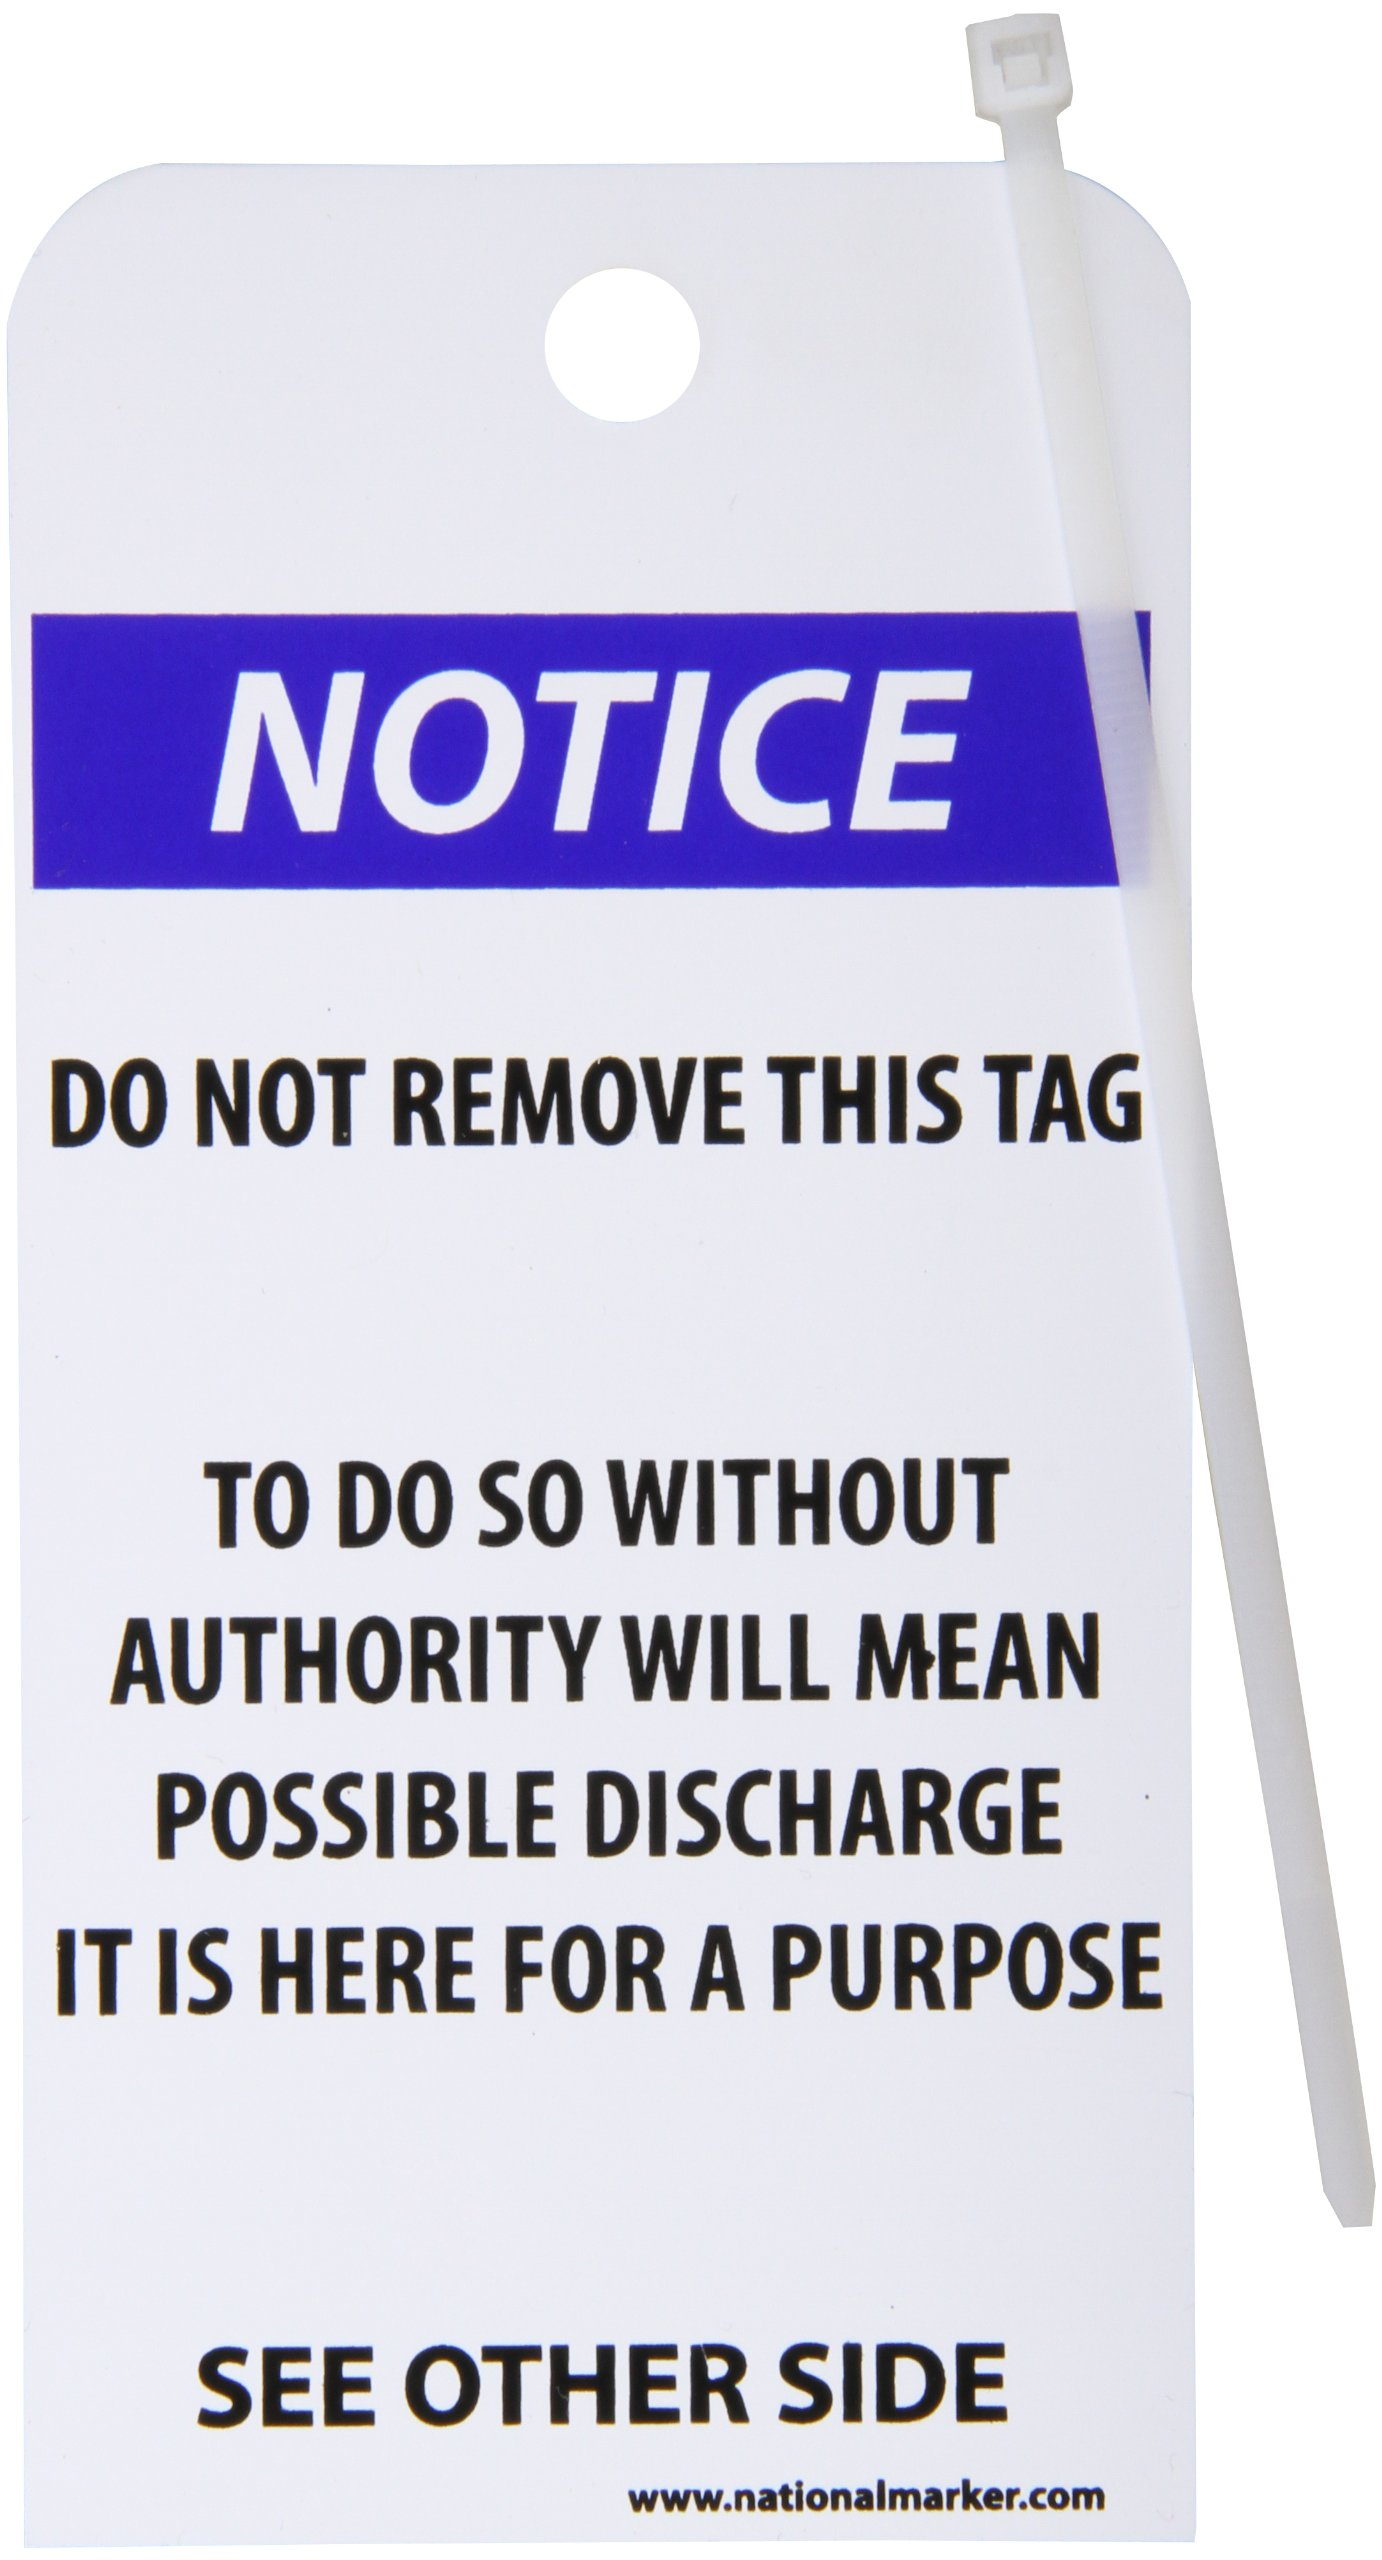 NMC RPT38''Notice'' Accident Prevention Tag, Unrippable Vinyl, 3'' Length, 6'' Height, Black/Blue on White (Pack of 25)